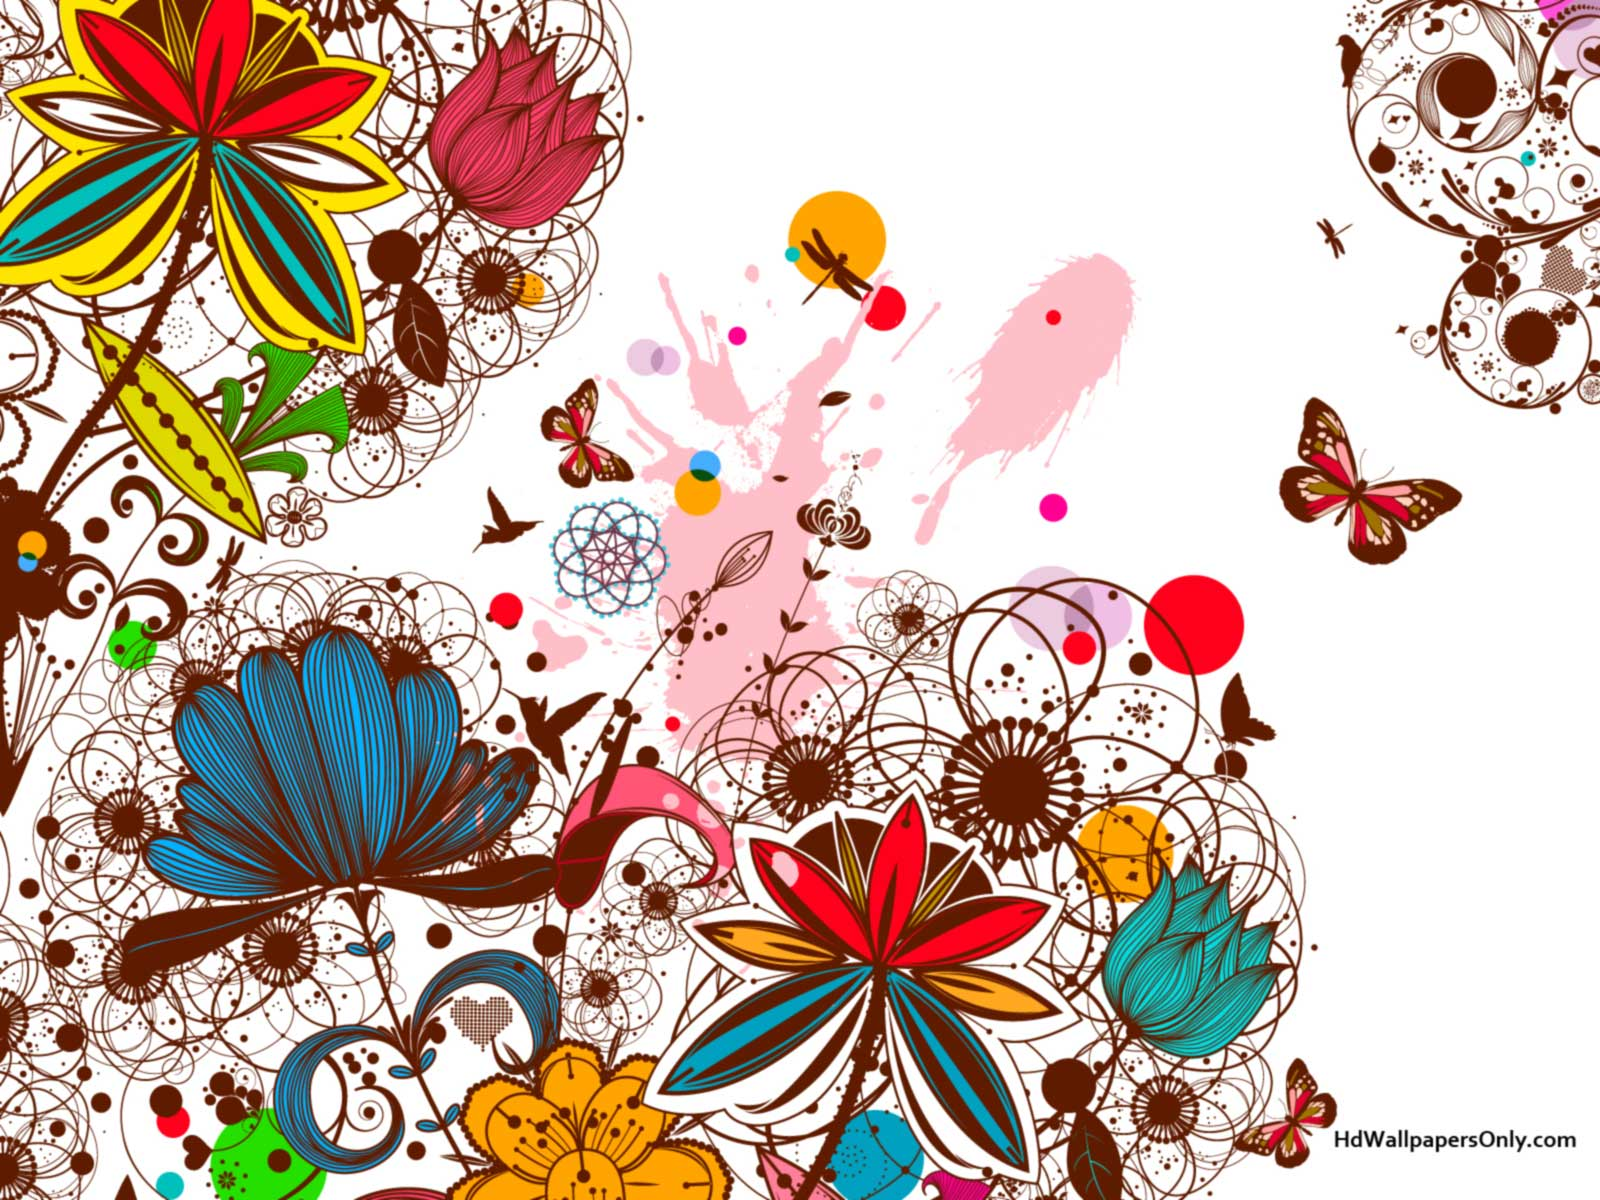 Floral Background Designs Hd Qualityhd Wallpapers Only